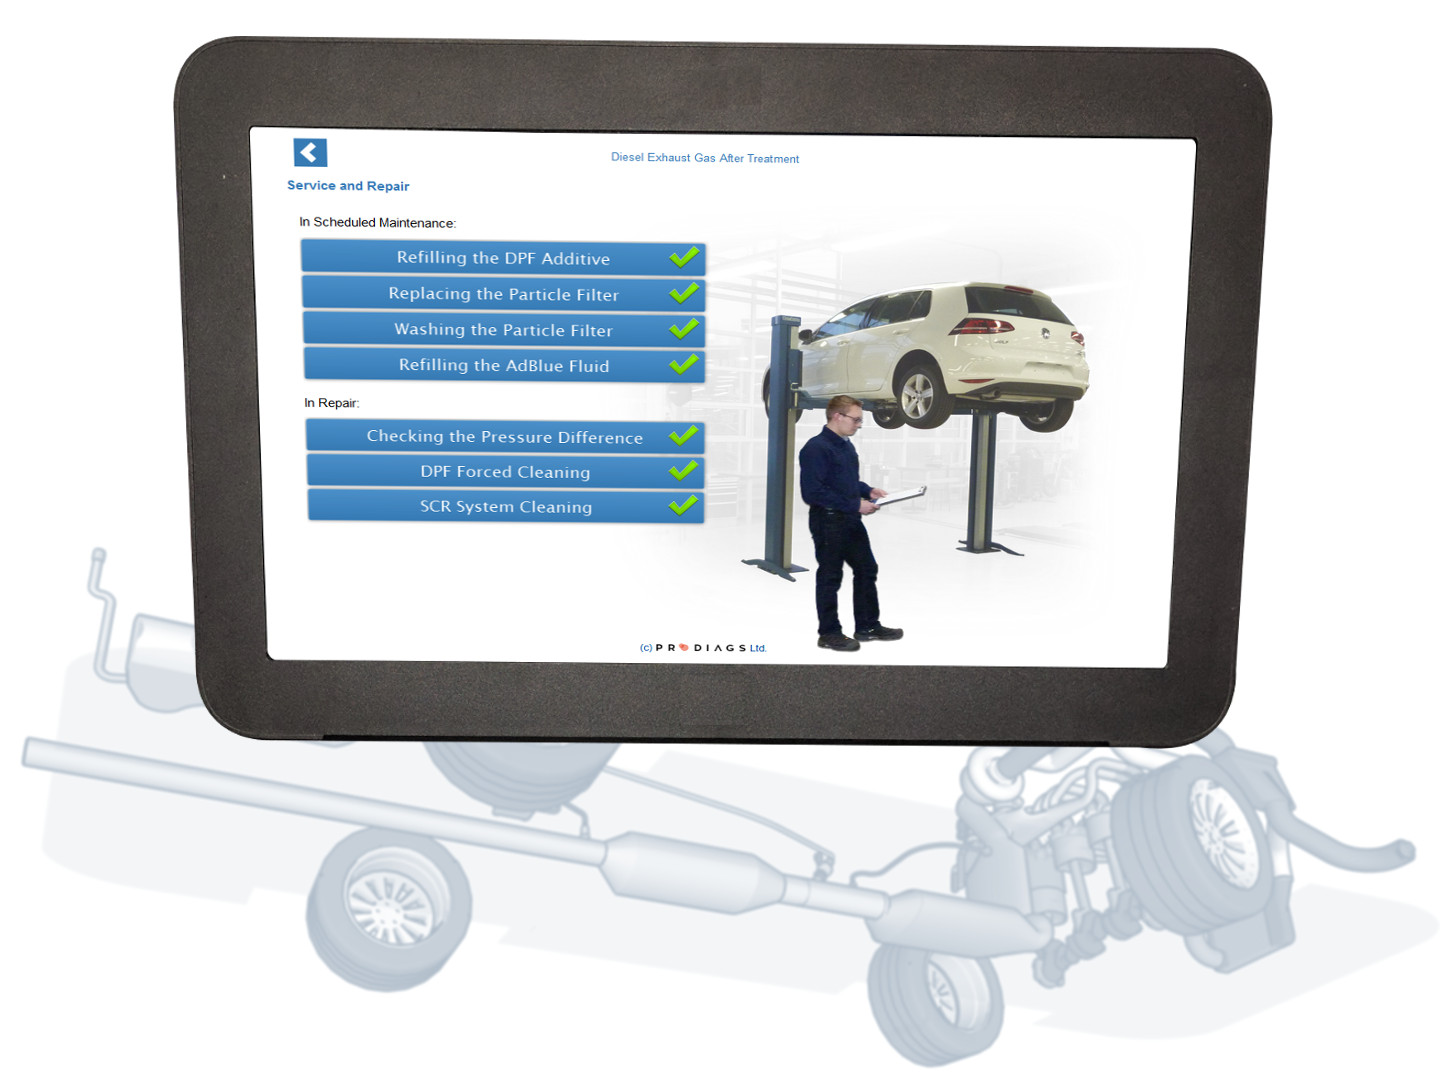 Learn about diesel particulate filters and selective catalytic reduction with this diesel exhaust training module. Learn how to service and repair DPF- and SCR-systems, and how to troubleshoot these systems in case of a problem. Learn about SCR-system maintenance, DPF washing and replacement, and much more with this online training module.